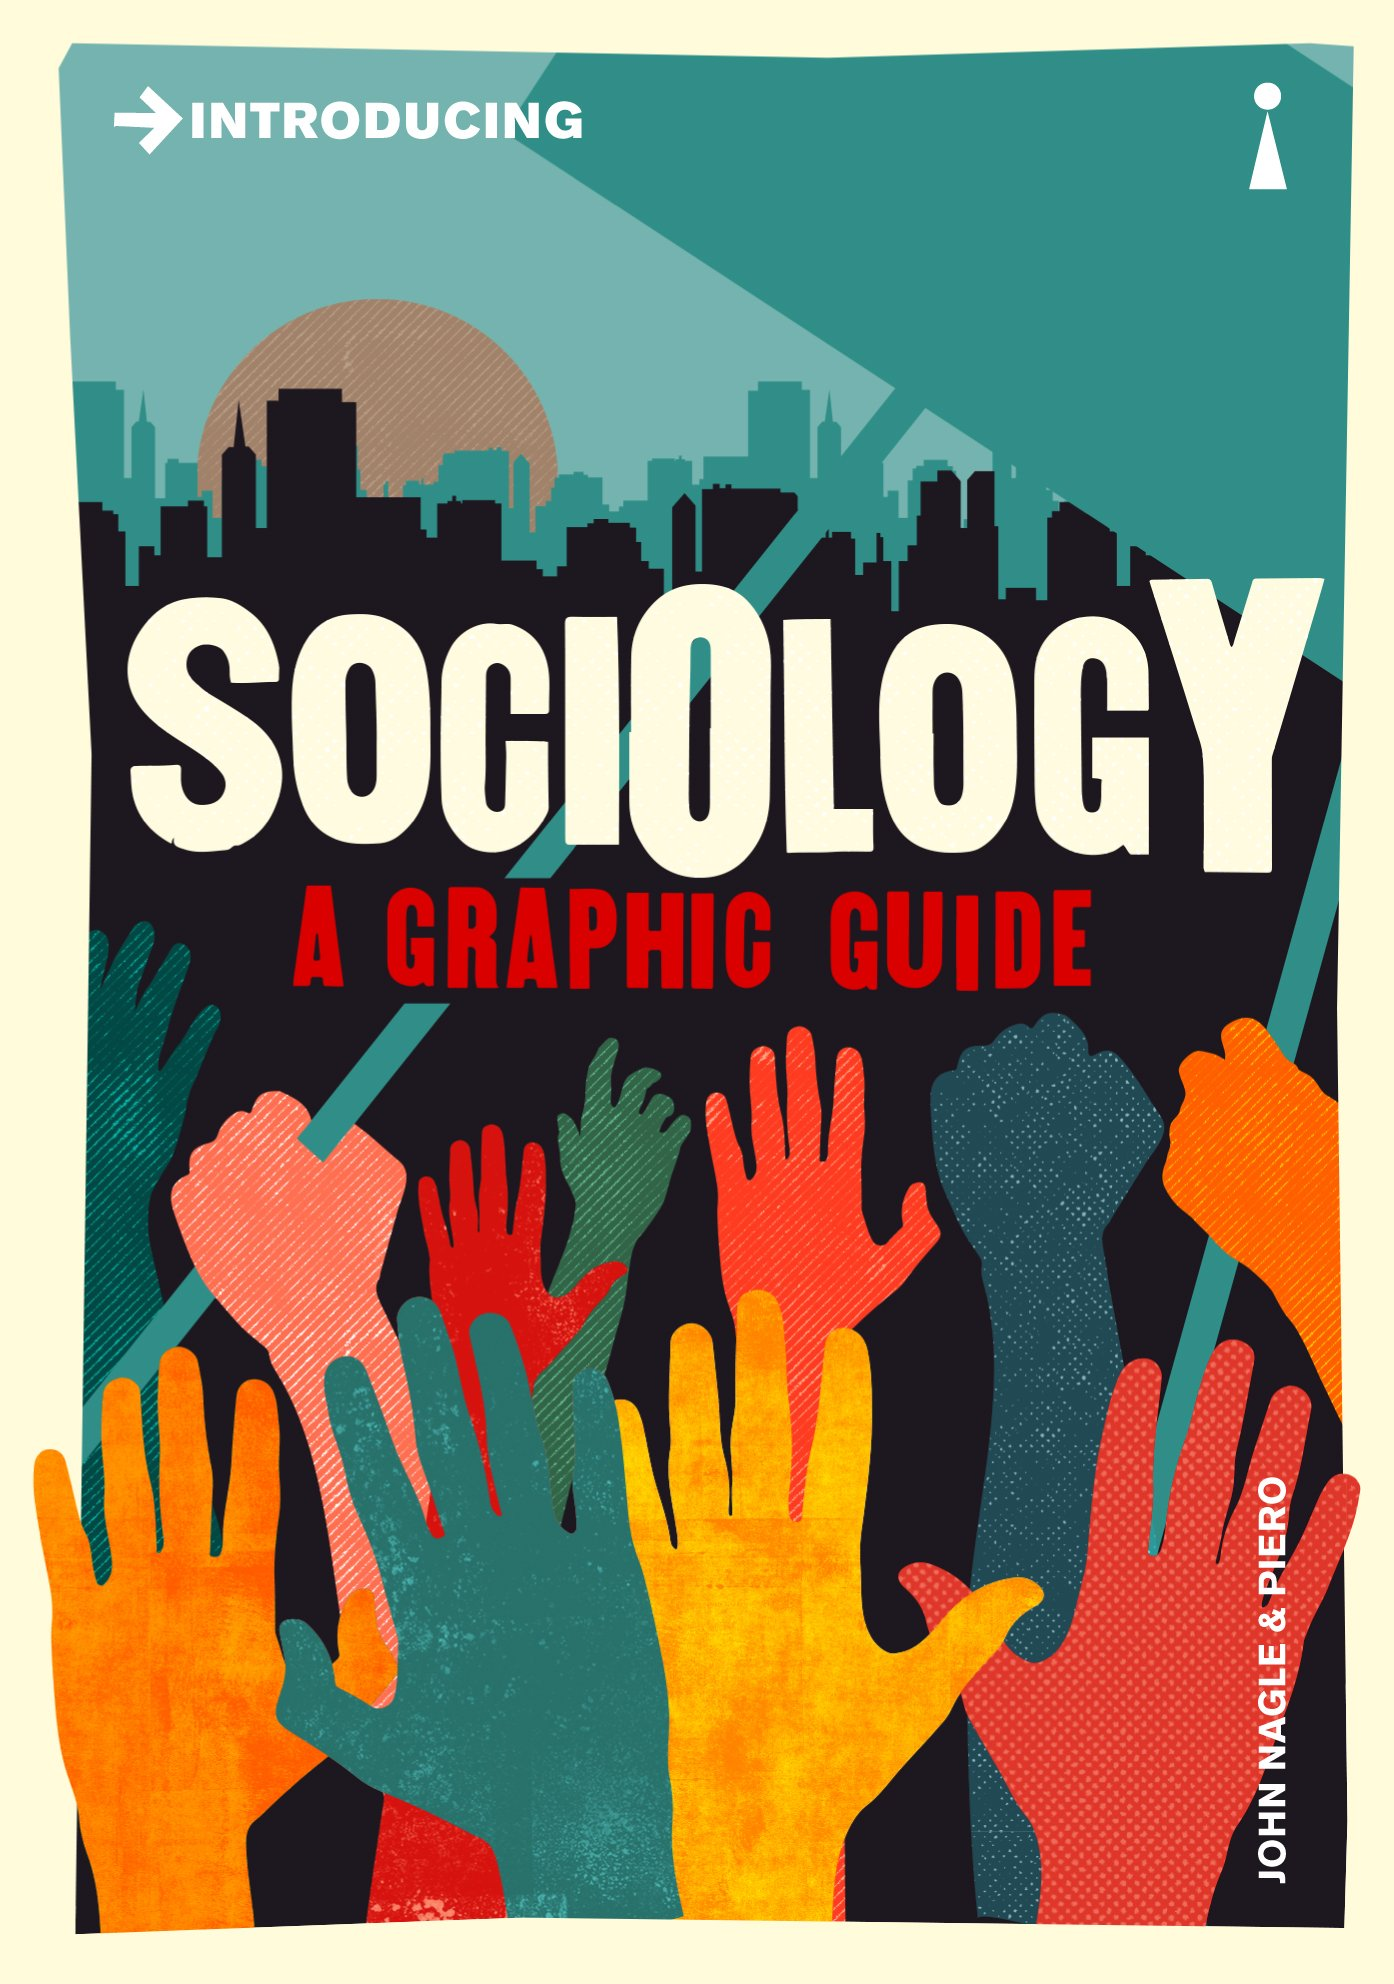 Introducing sociology a graphic guide introducing graphic guides introducing sociology a graphic guide introducing graphic guides john nagle piero 9781785780738 amazon books fandeluxe